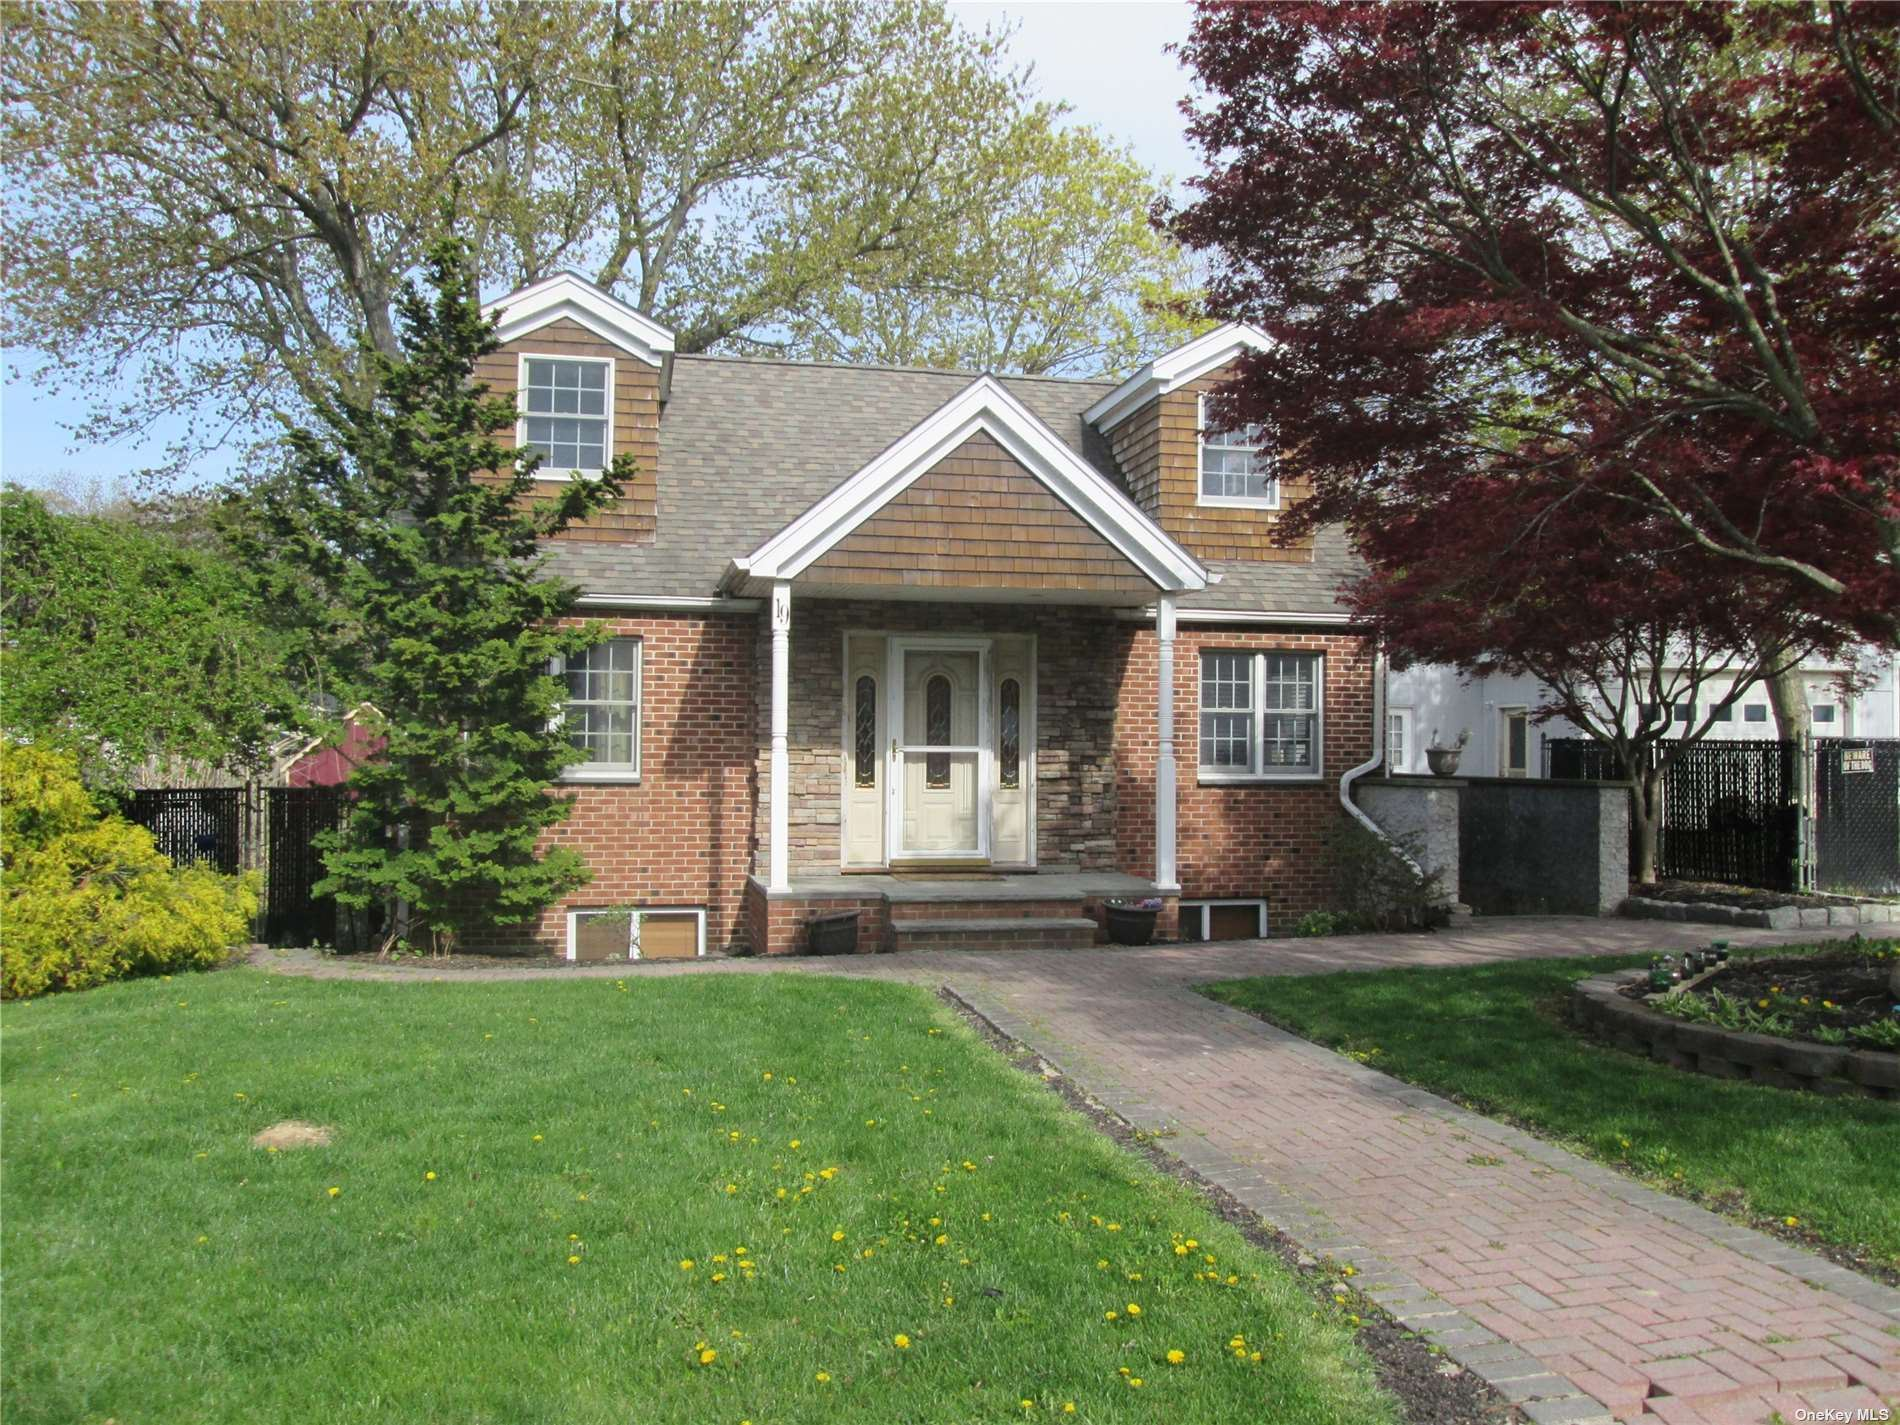 19 Artist Drive, Middle Island, NY 11953 - MLS#: 3309015